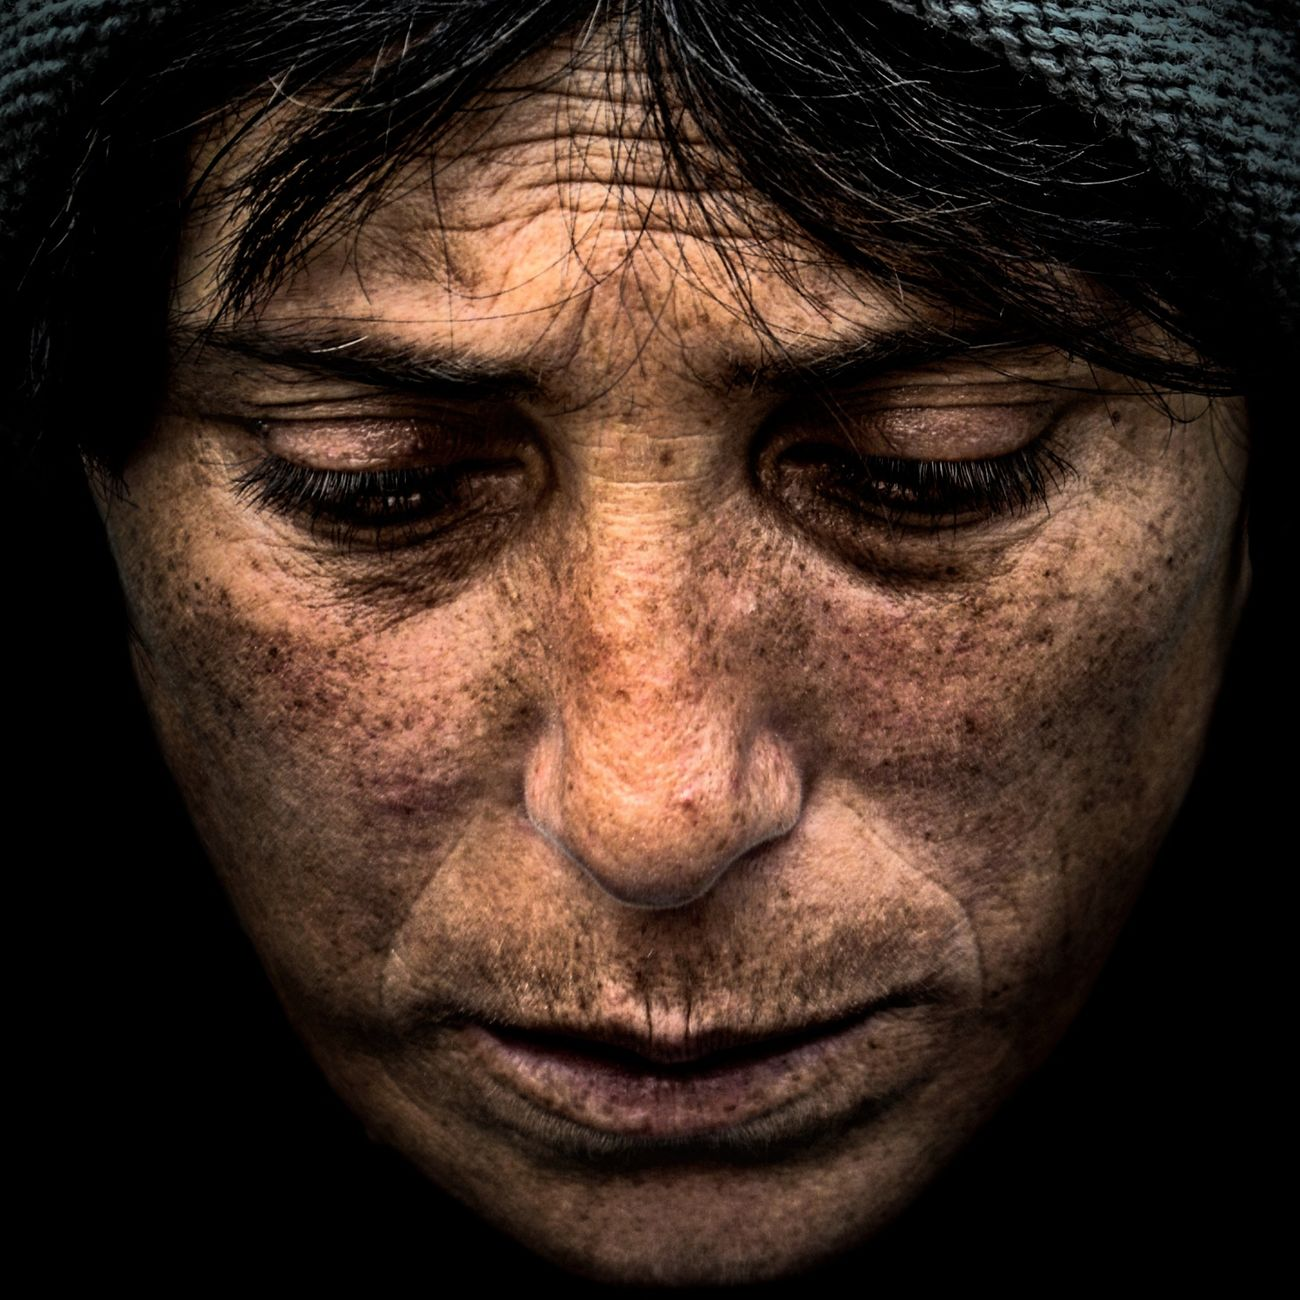 Anonymous portrait... Portrait Human Face Adults Only One Person Streetphotography Adult Person Wrinkled Human Eye Facial Expression Exhibition Pieces Human Skin Mature Adult Exhibition Exhibit Art Photographic Photograph Photographer Gallery Visitor Watchers Watch See Look Looking Private Public Blurred Blur Out Of Focus Photography Documentary Reportage Street Exhibition Center Human Representation RePicture Ageing Contemplation EyeEm Best Shots Street Portrait The Human Condition Beauty Touching Real People Human Body Part